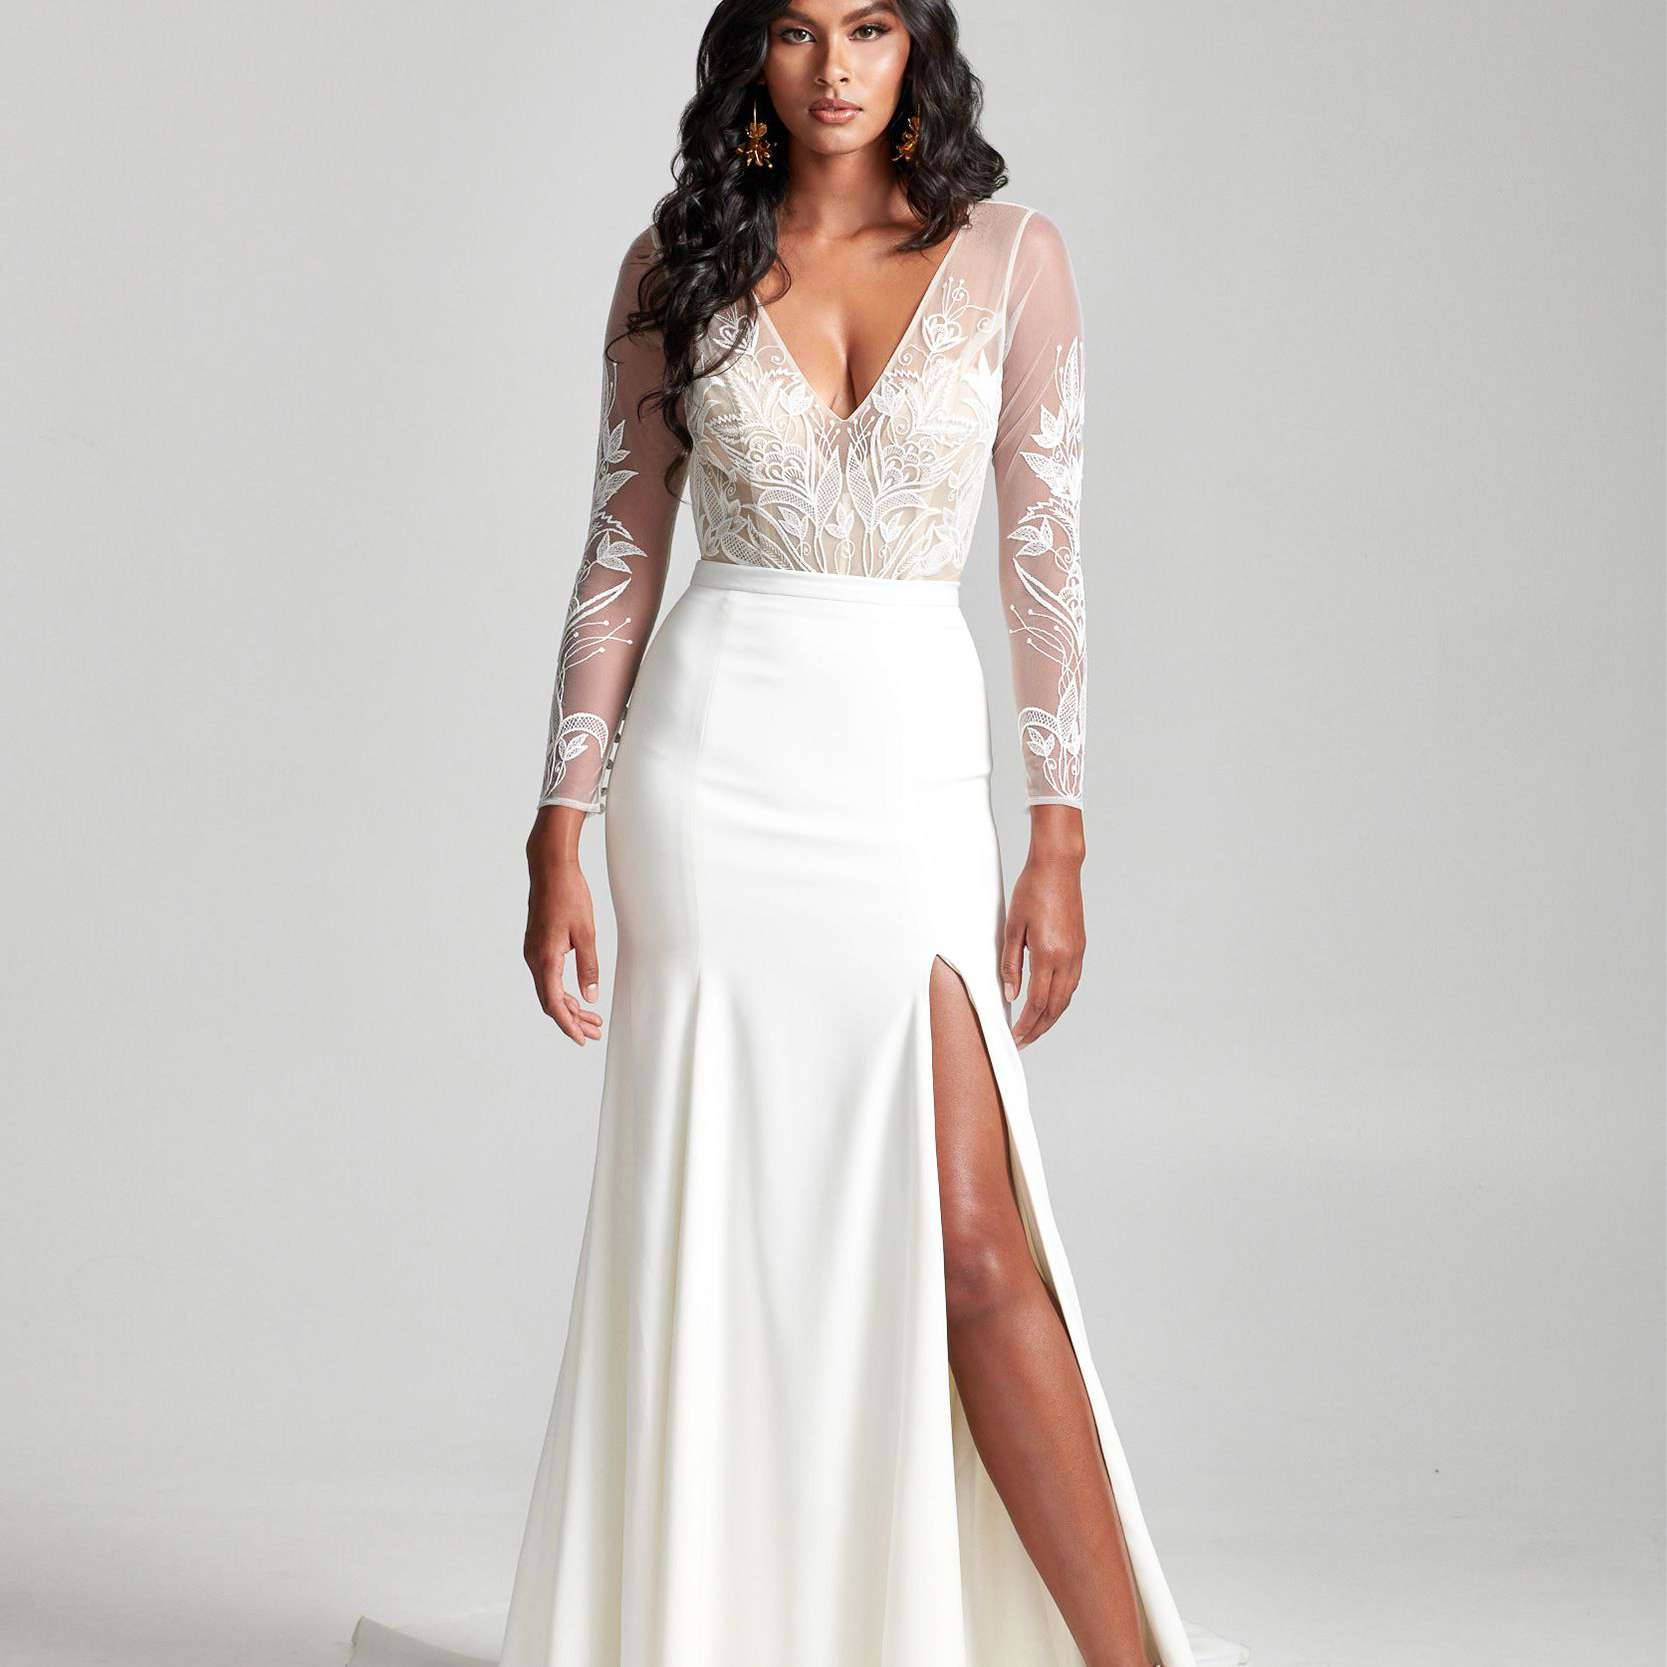 Model in lace v-neck long-sleeve top and skirt with side slit